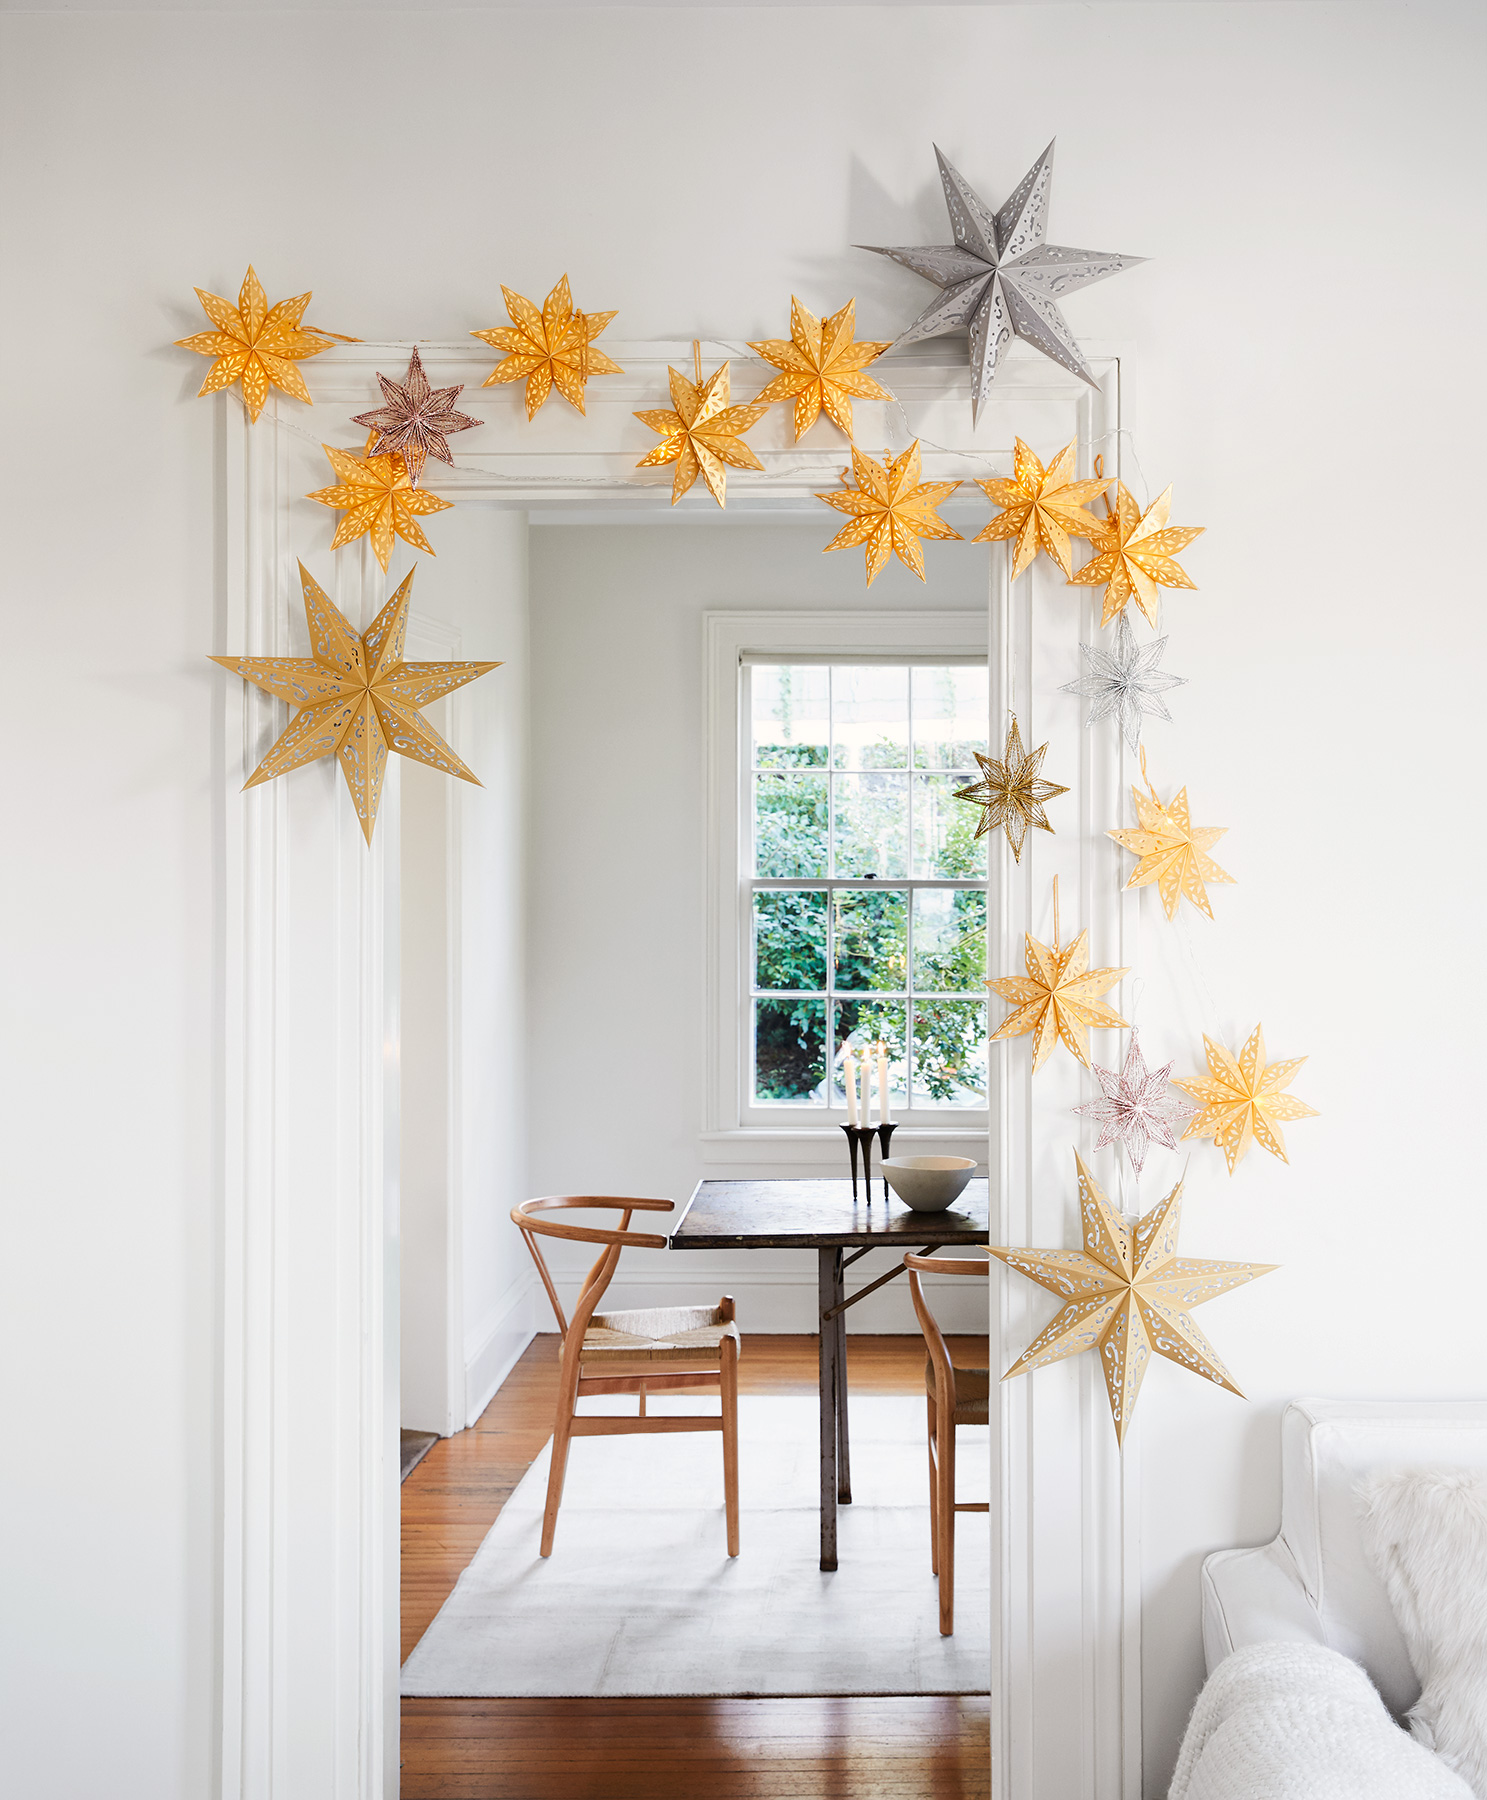 Christmas decoration ideas - Celestial Doorway